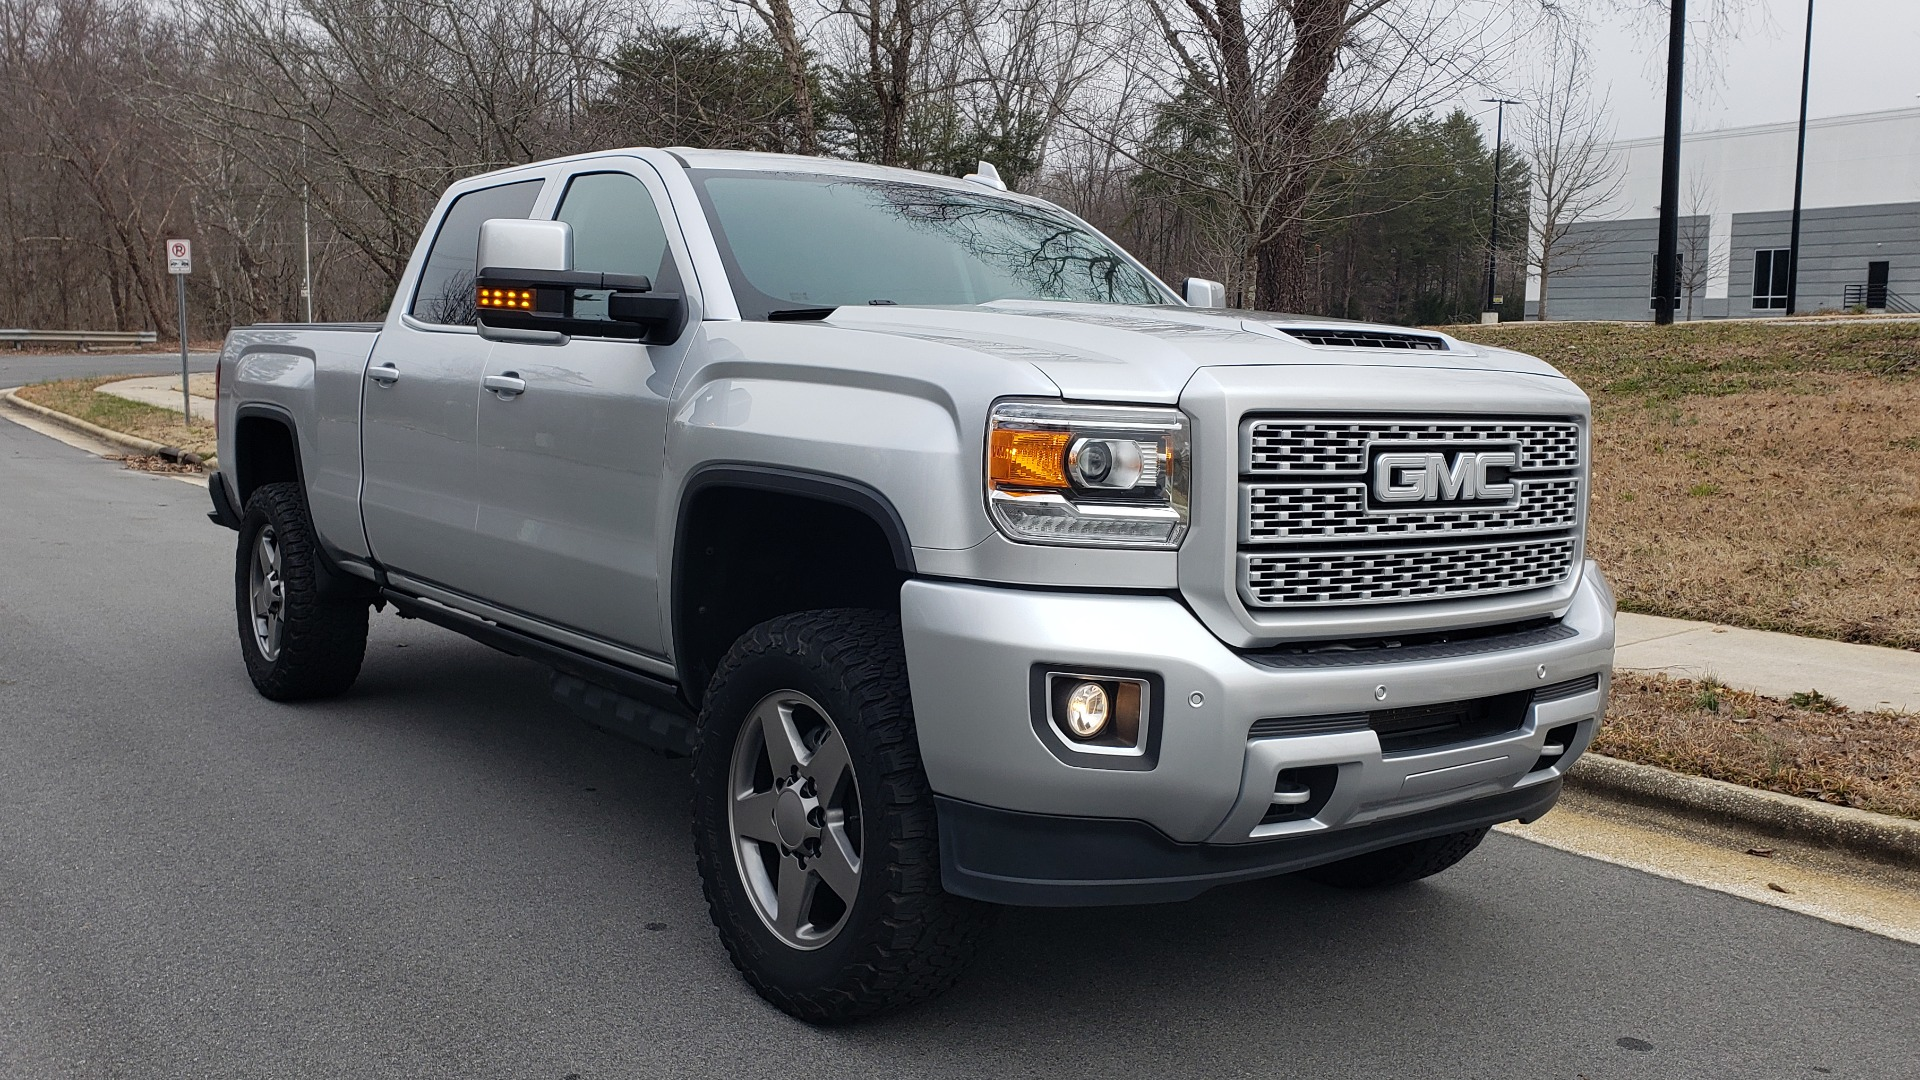 Used 2018 GMC SIERRA 2500HD DENALI 4X4 CREWCAB / 6.6L DURAMAX PLUS / NAV / SUNROOF / REARVIEW for sale $61,999 at Formula Imports in Charlotte NC 28227 5